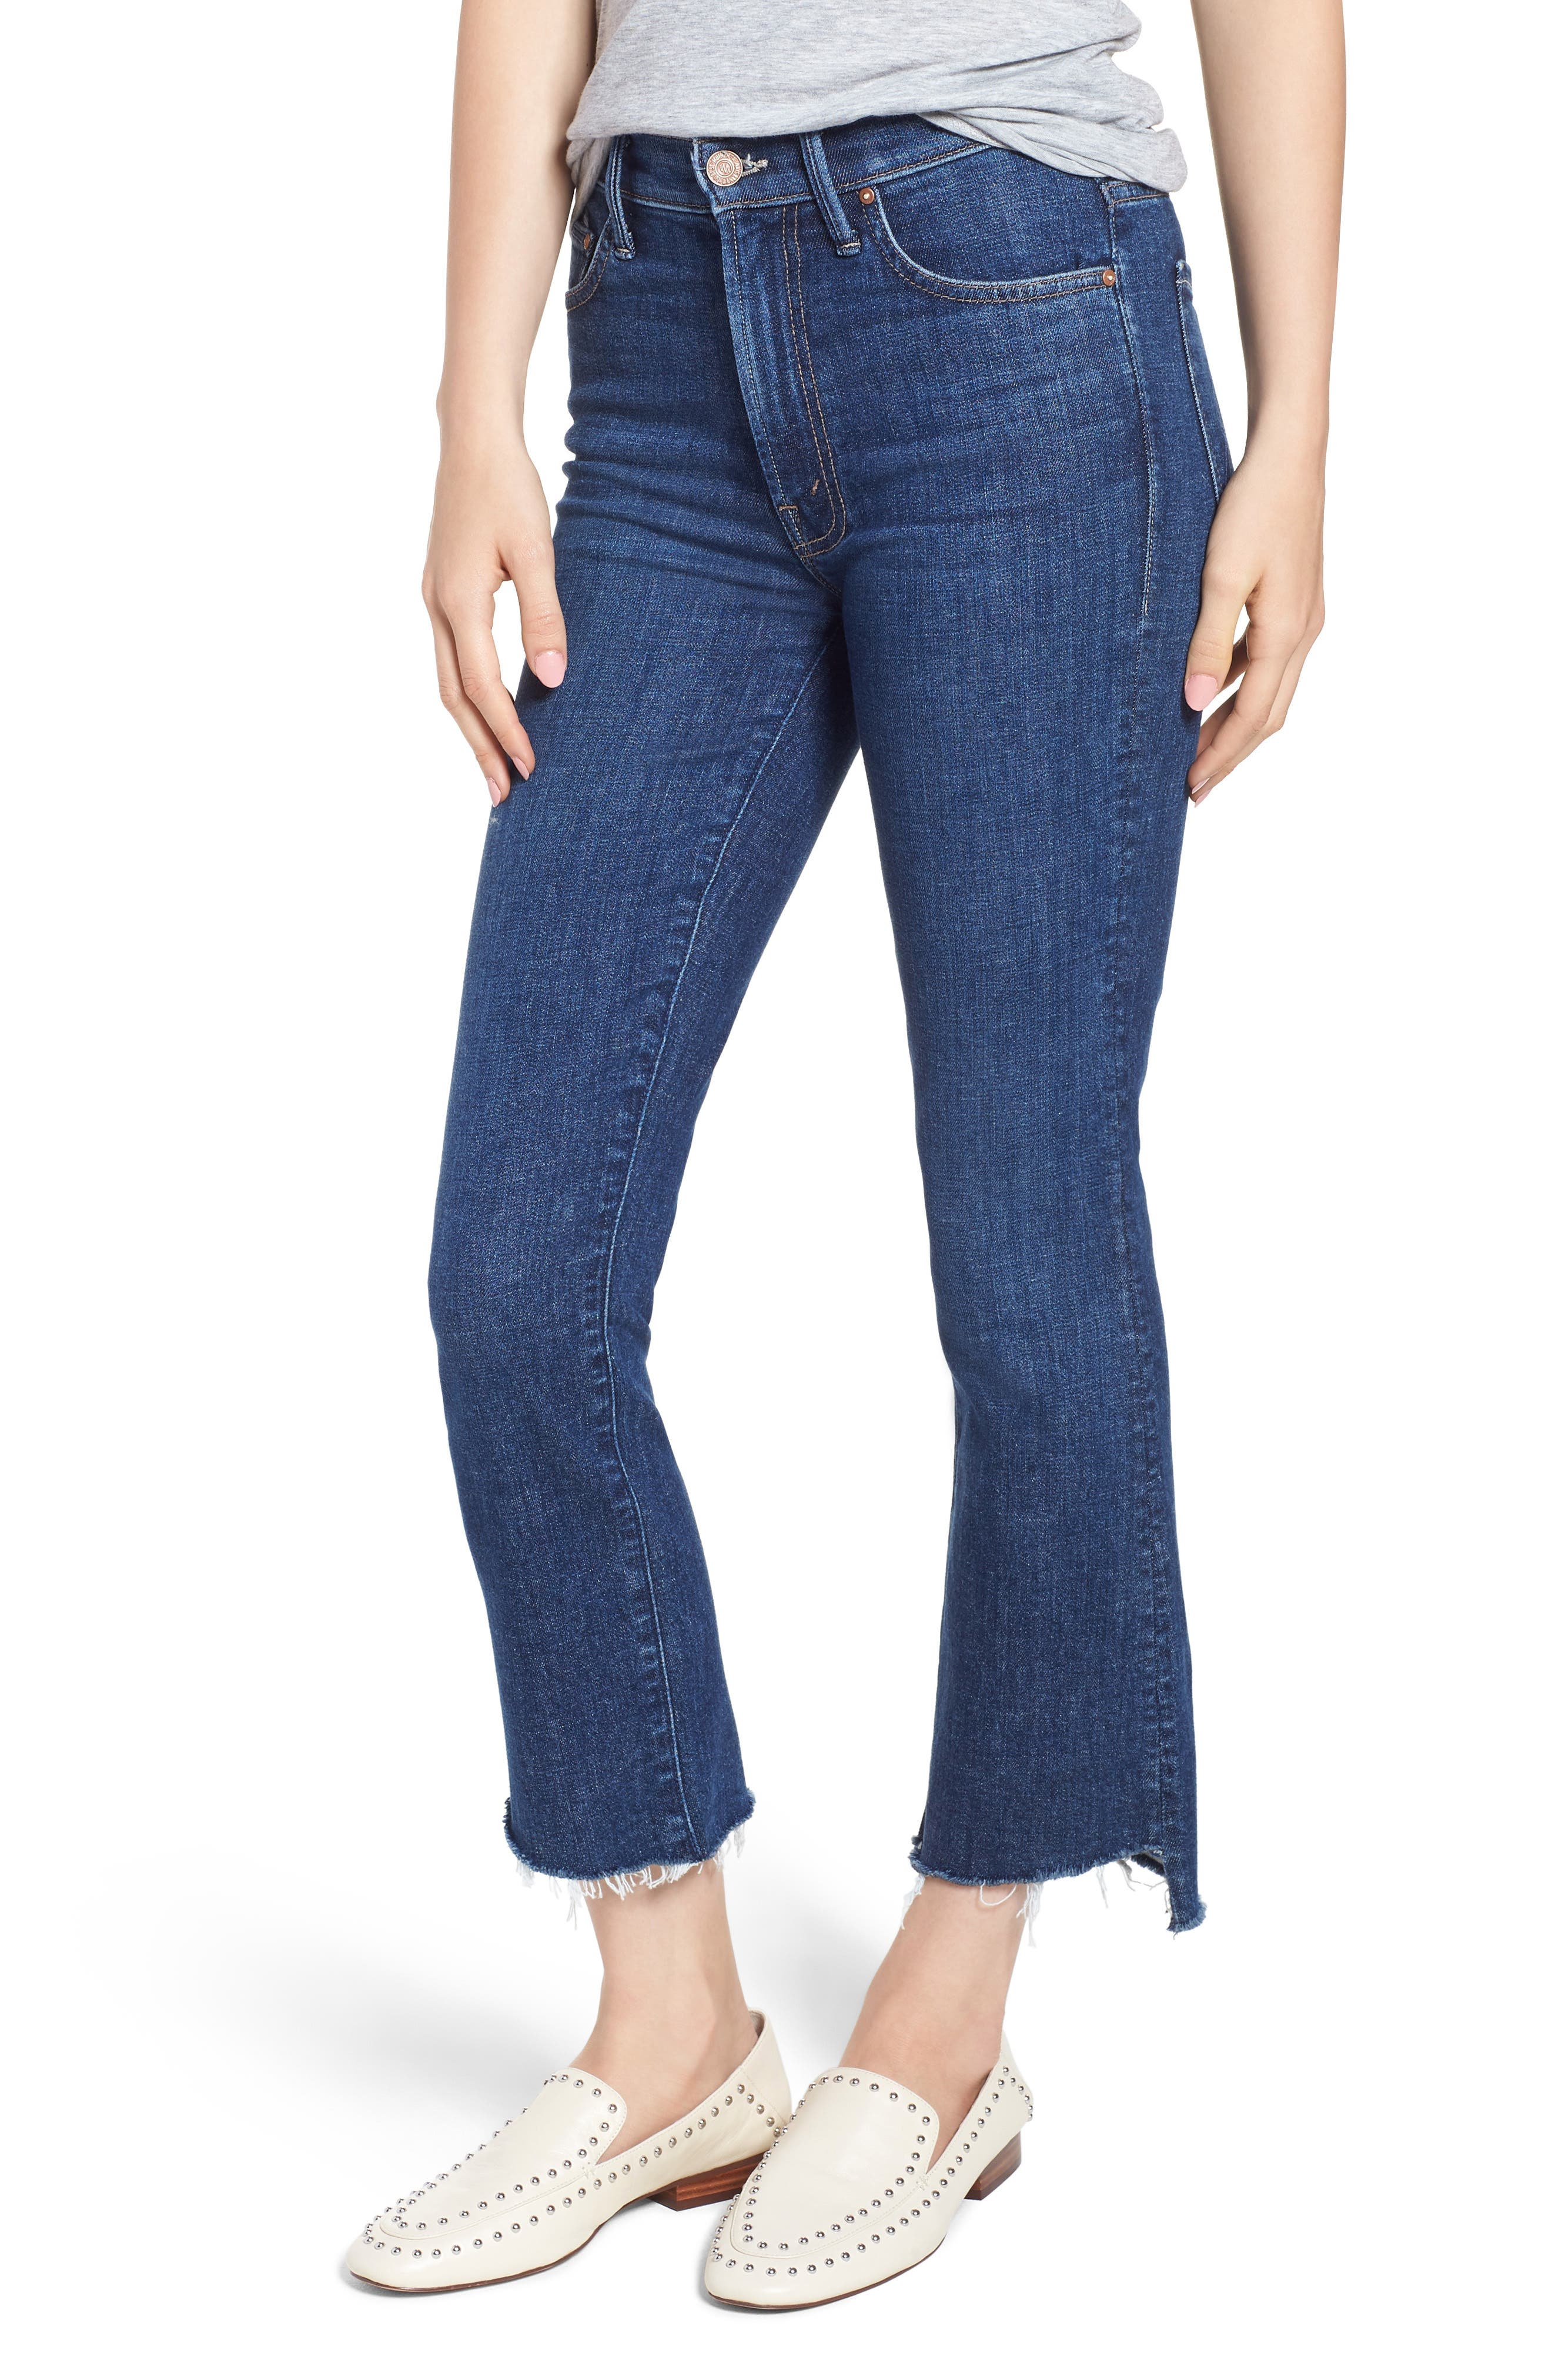 'THE INSIDER' CROP STEP FRAY JEANS